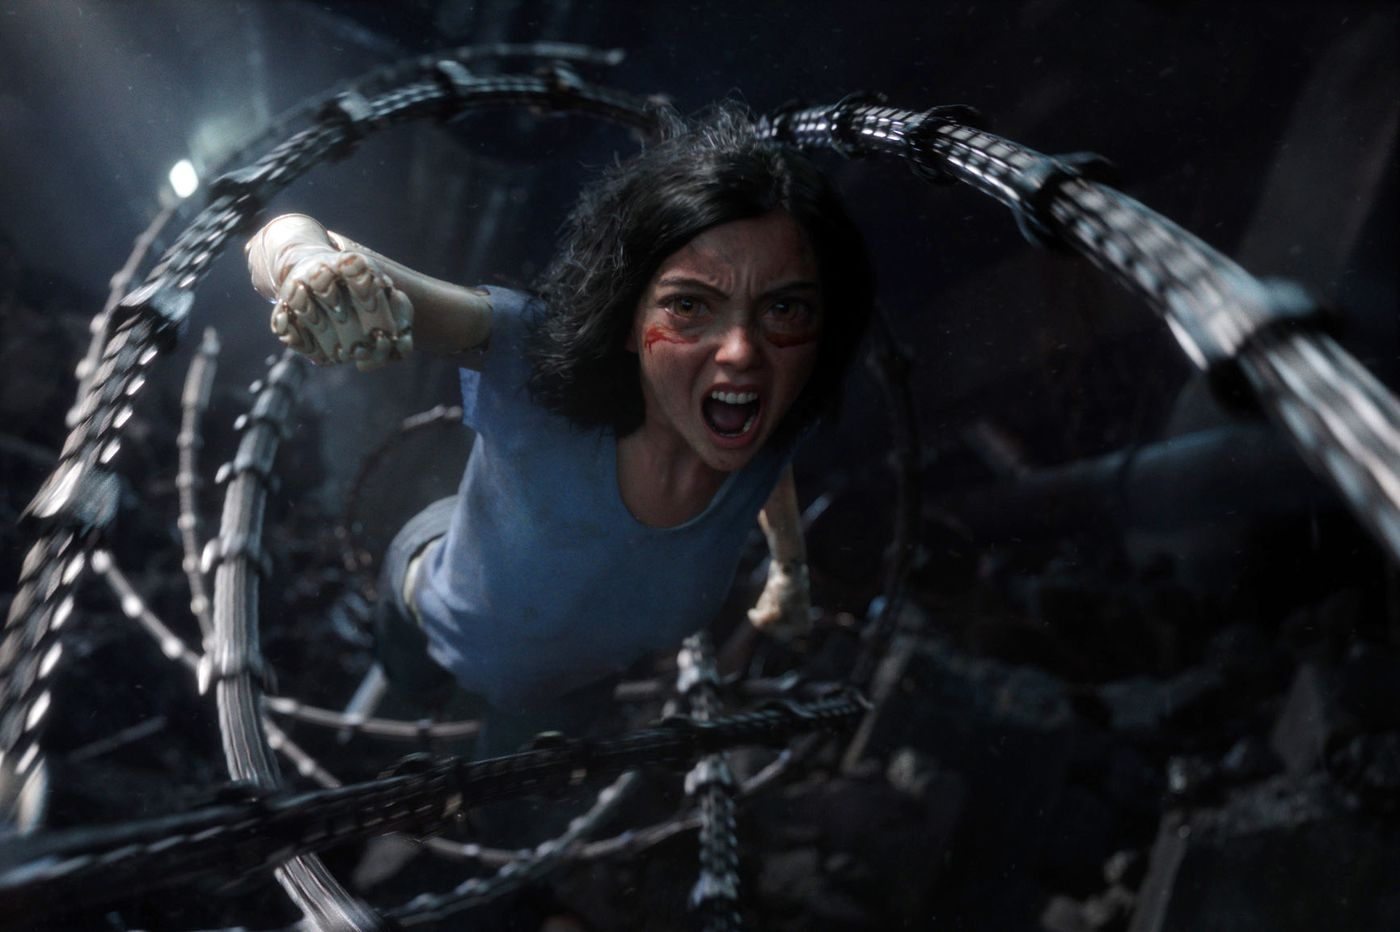 'Alita: Battle Angel': $200 million in cutting-edge special effects and no story | Movie review